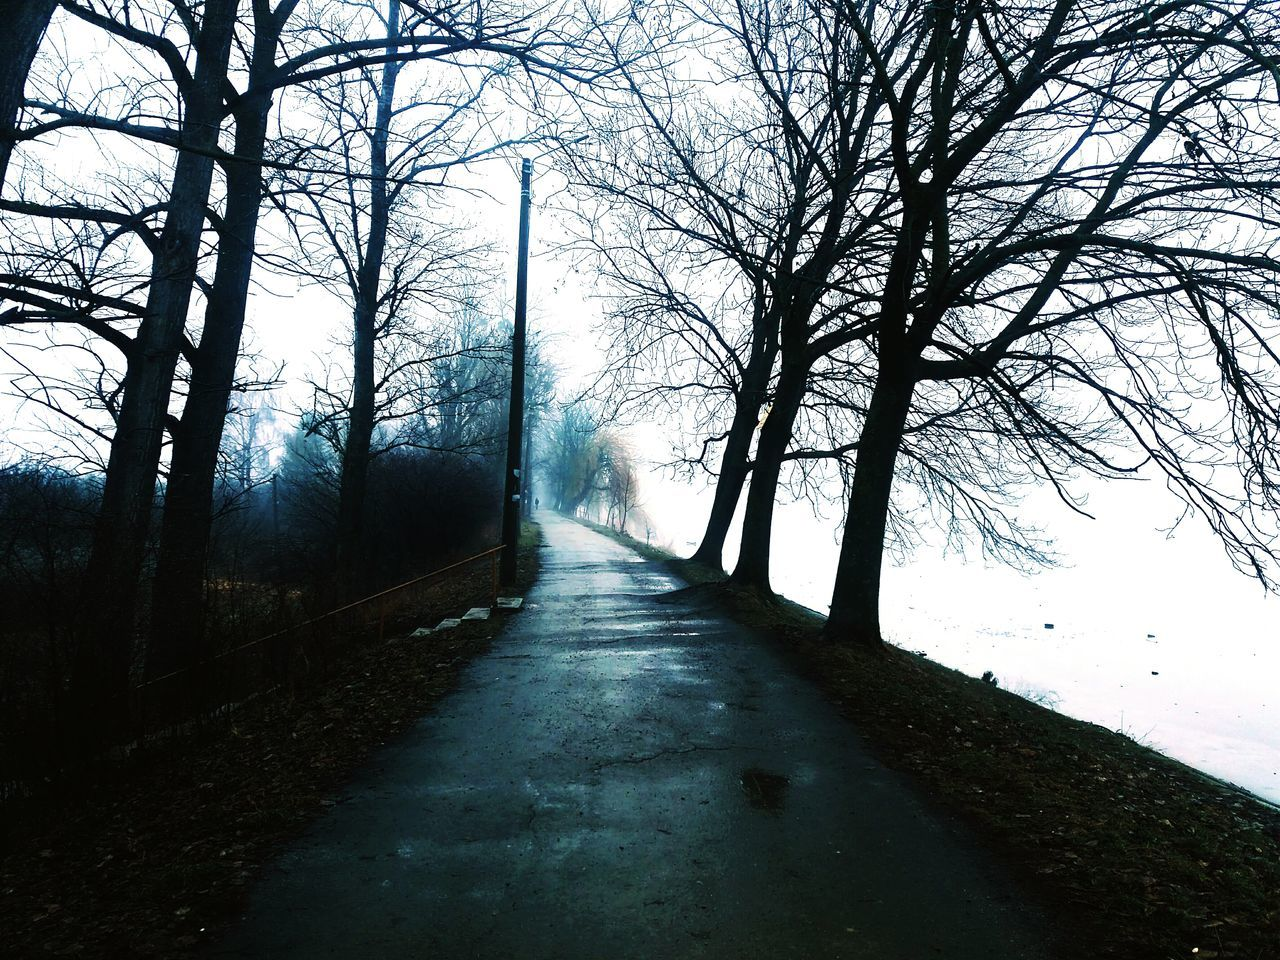 Nature Rainy Weather Tree Beauty In Nature The Way Forward Sky Day Outdoors Non-urban Scene No People Tranquility Landscape Scenics